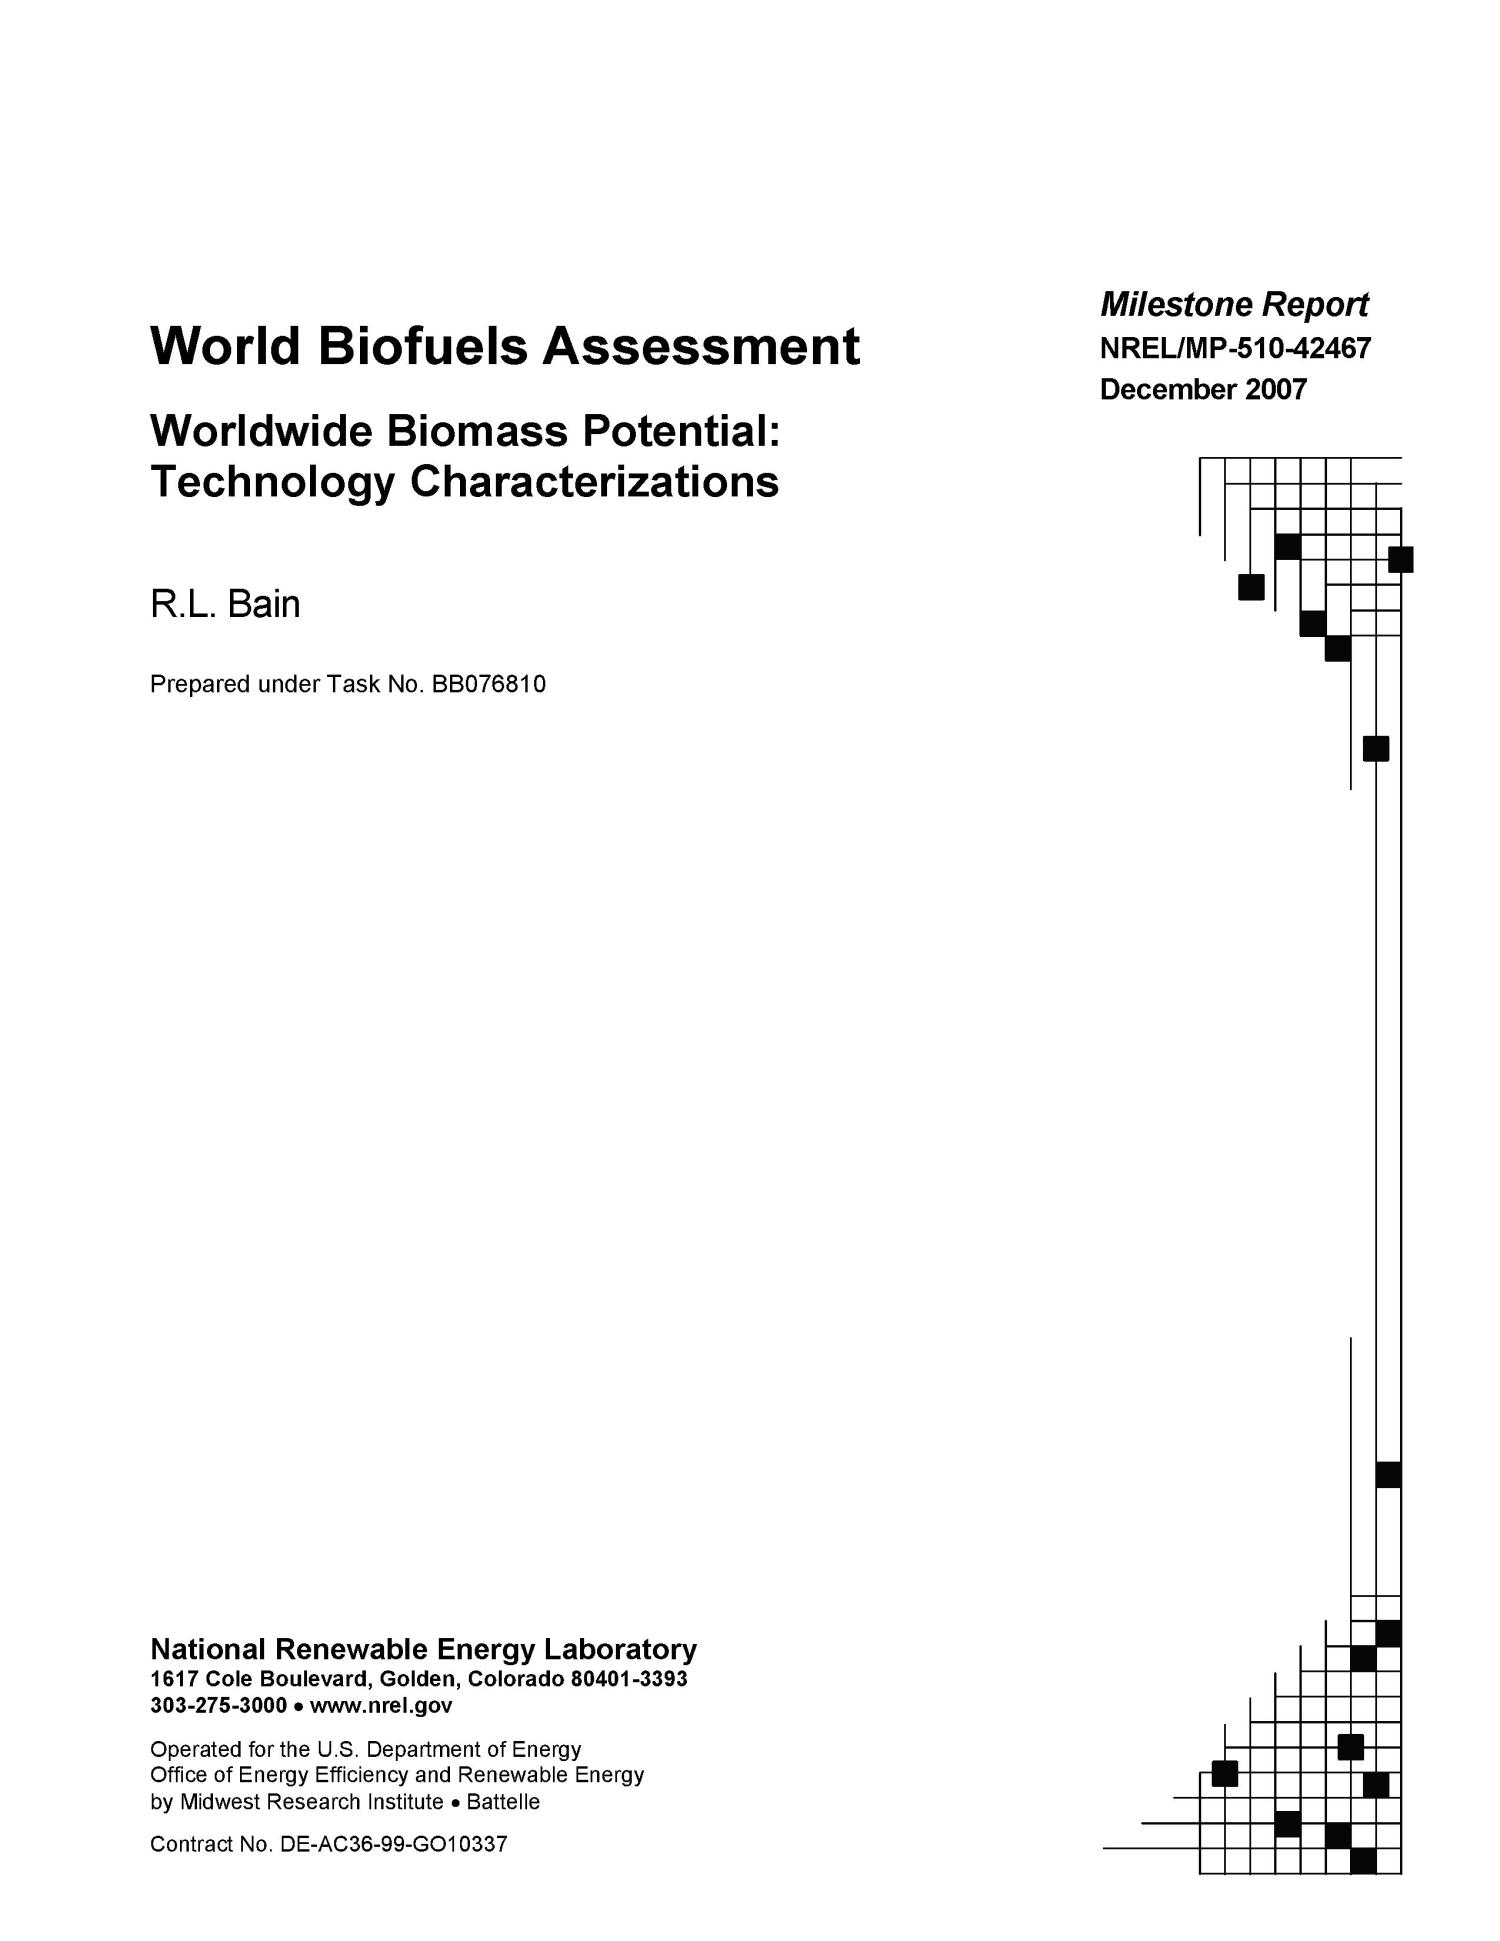 World Biofuels Assessment; Worldwide Biomass Potential: Technology Characterizations (Milestone Report)                                                                                                      [Sequence #]: 2 of 164